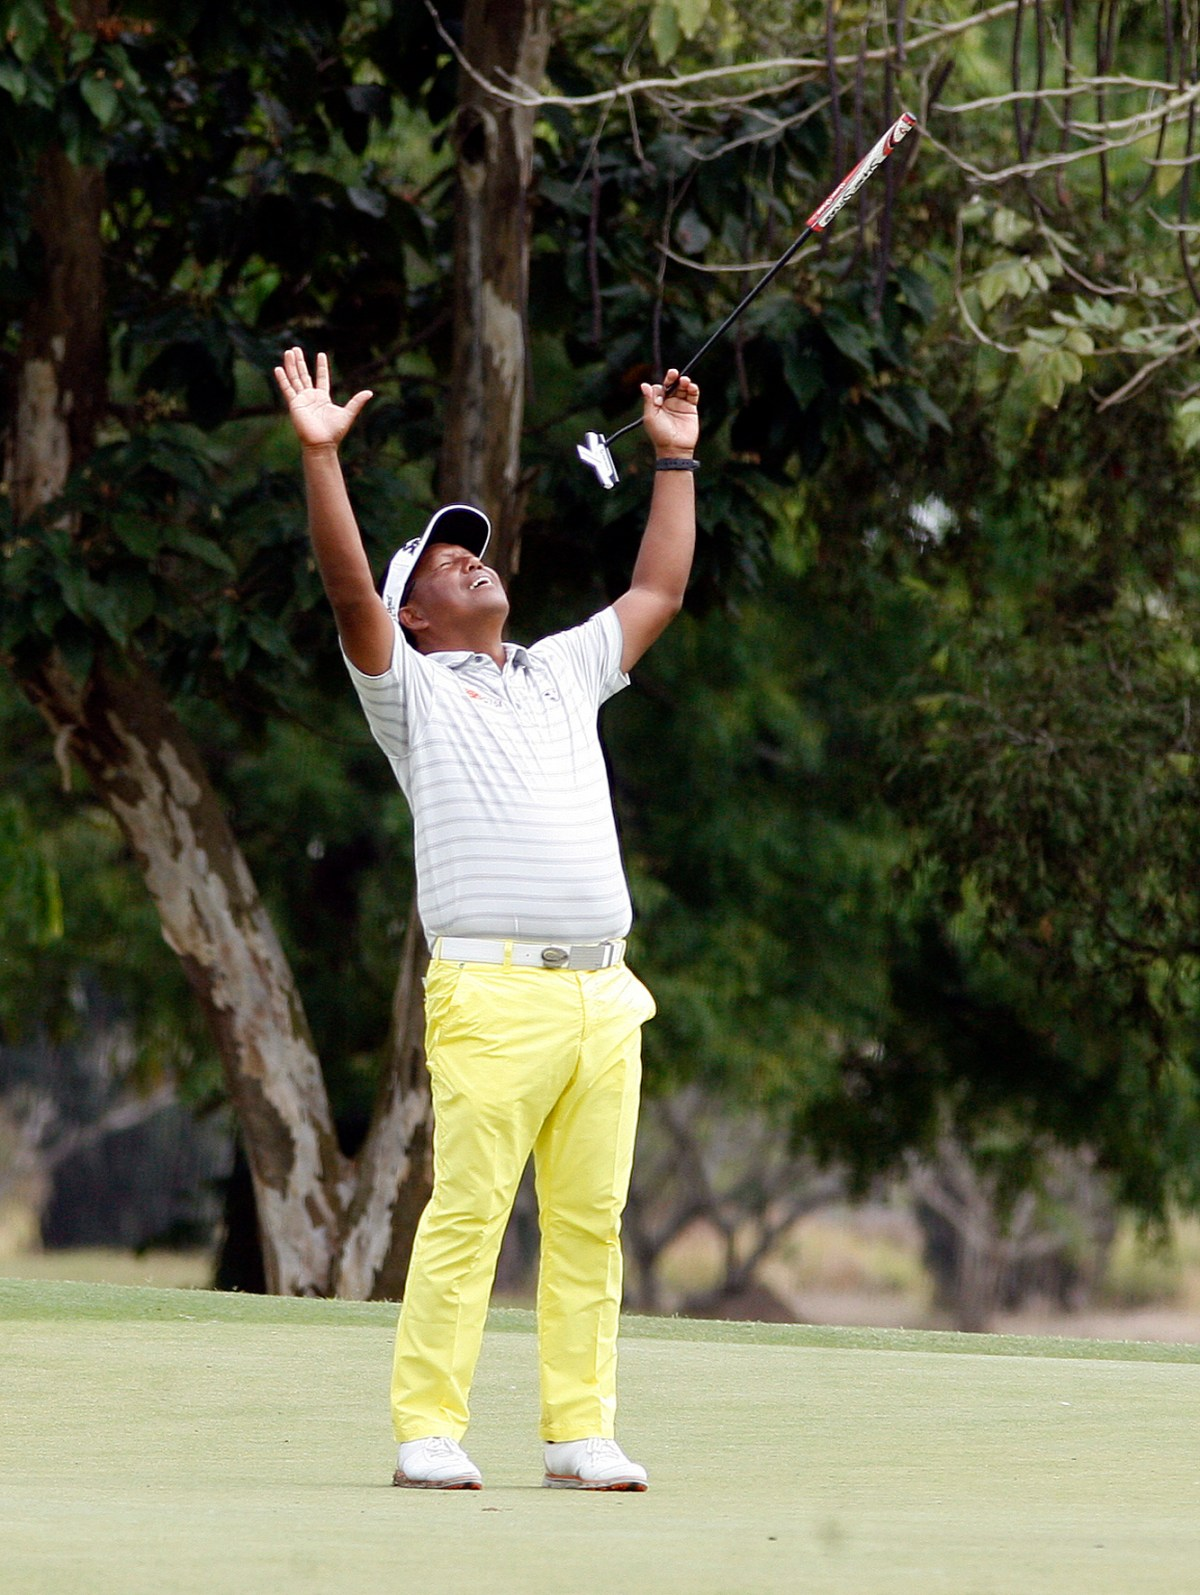 No, Tony Lascuña isn't celebrating his victory yet but only reacting to a flubbed birdie putt on No. 6 after going five-under after five holes in the final round of the ICTSI Luisita Championship.